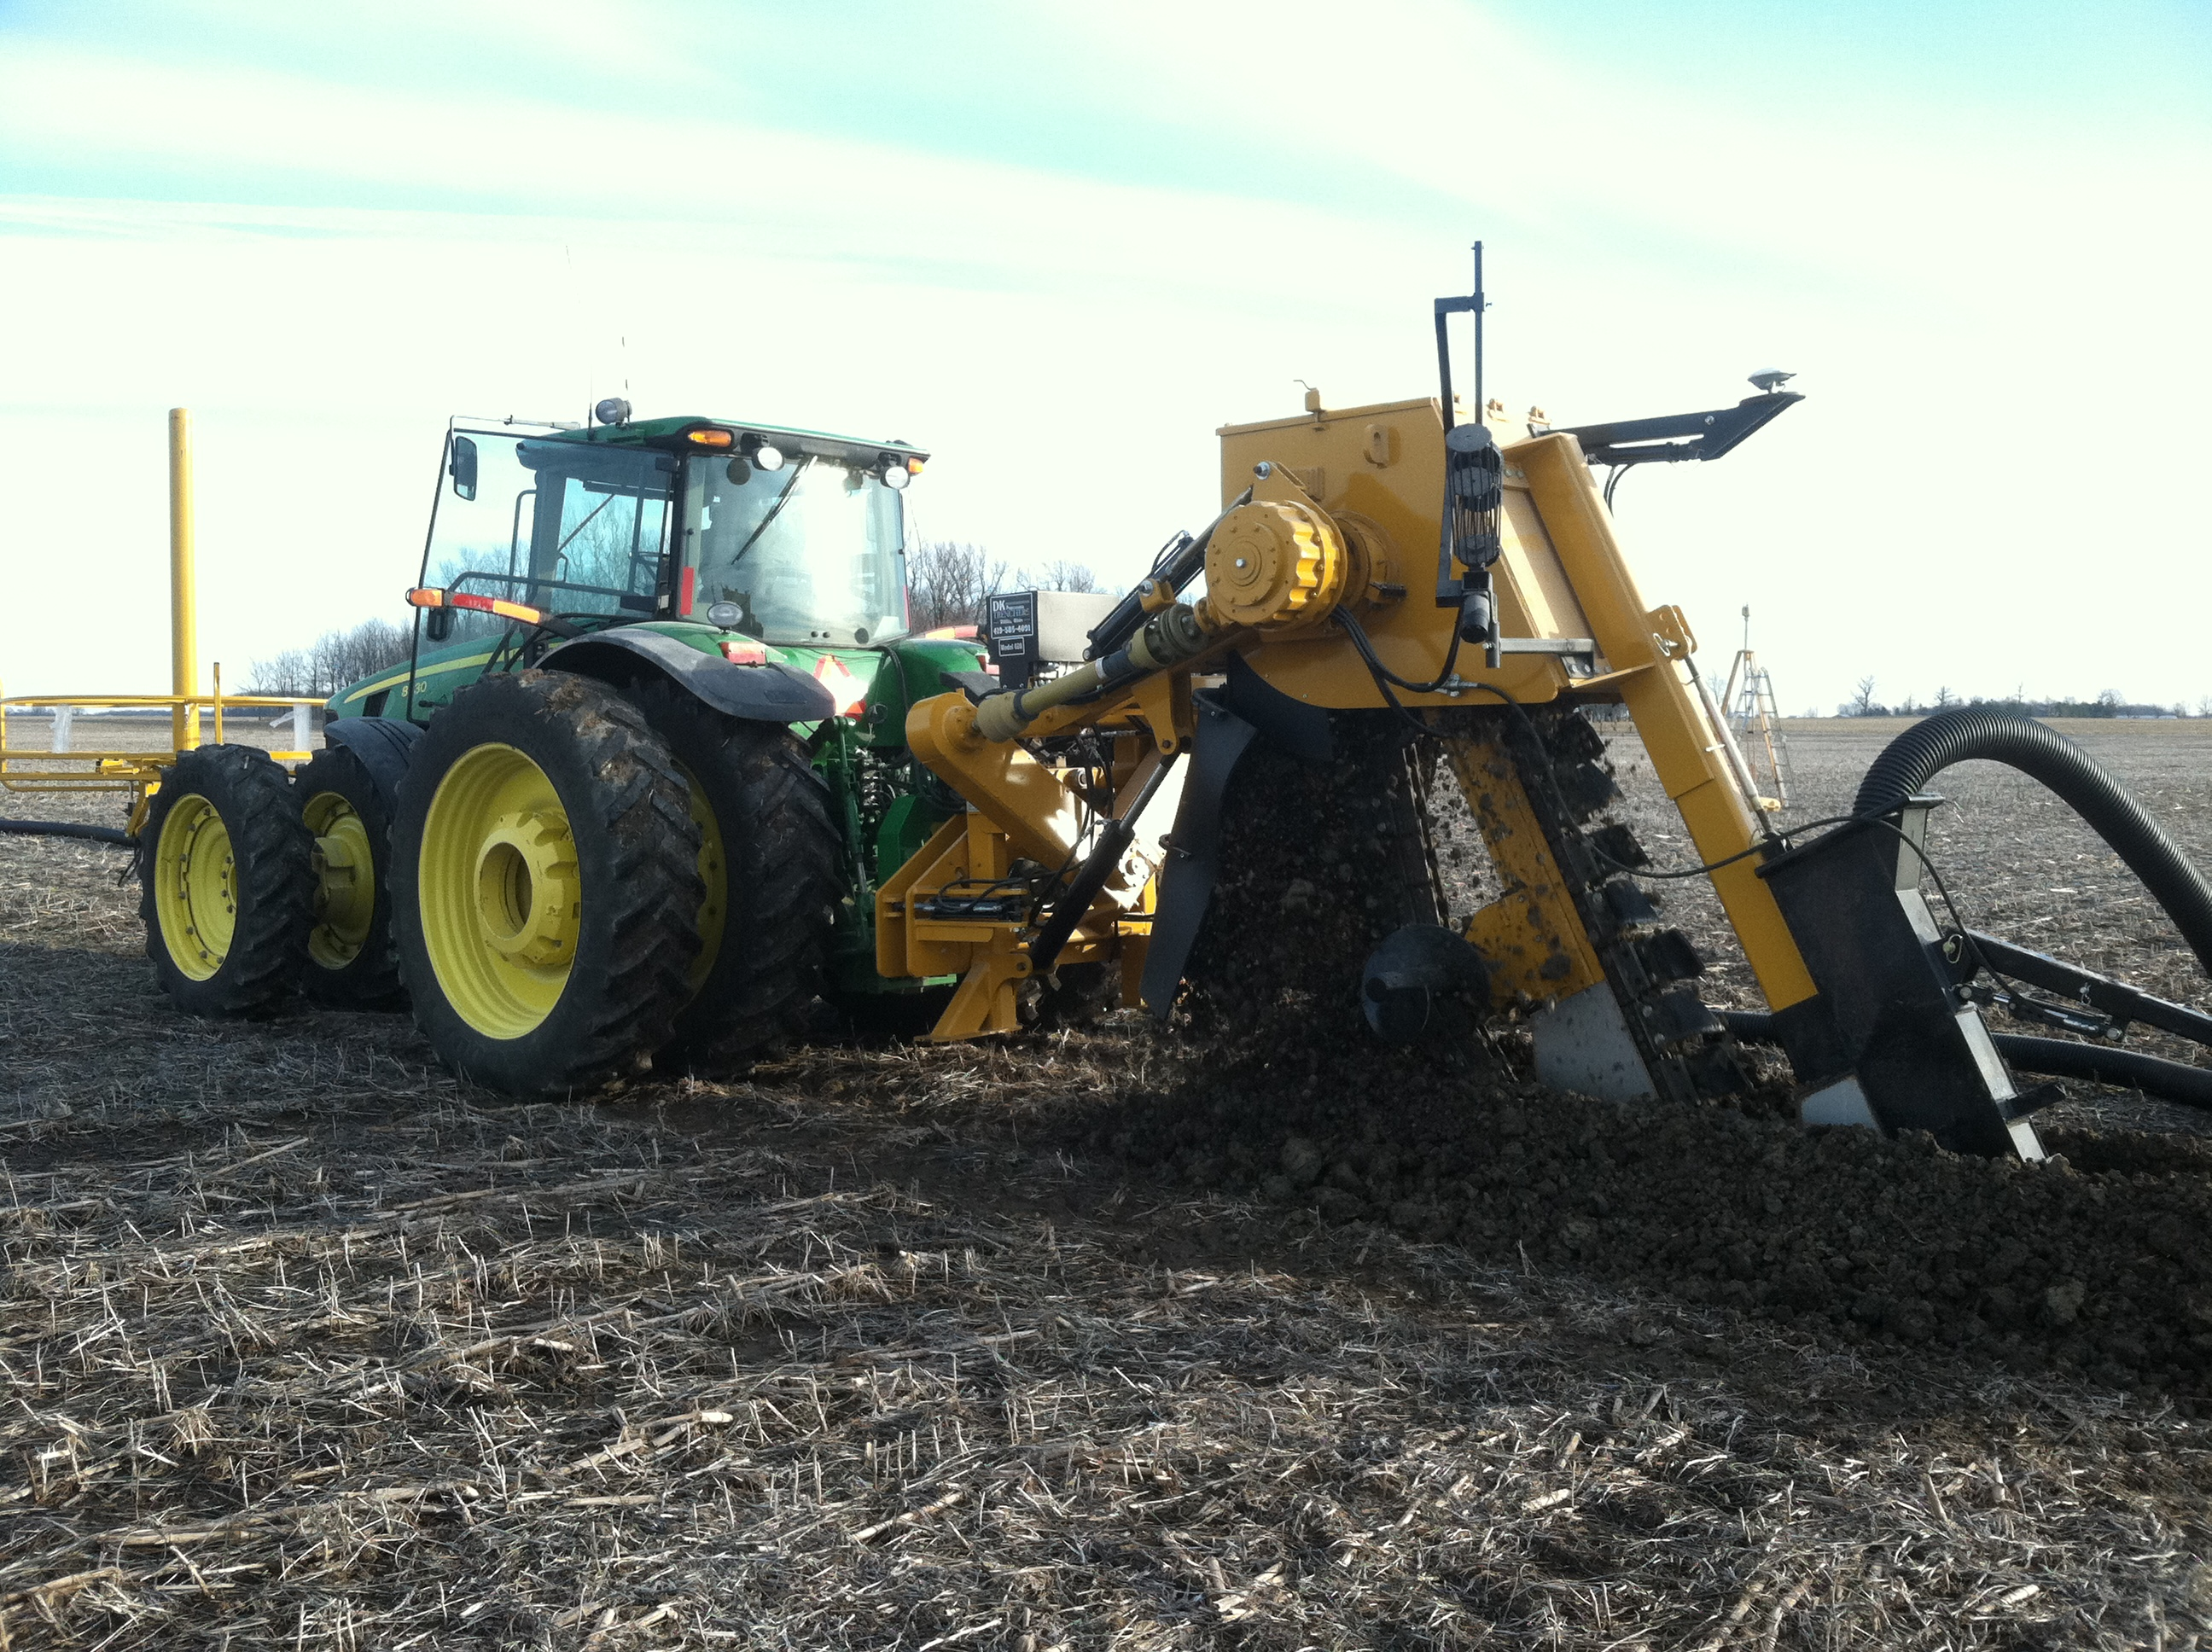 John Deere 8000 with DK Trencher and FmX and AutoPilot